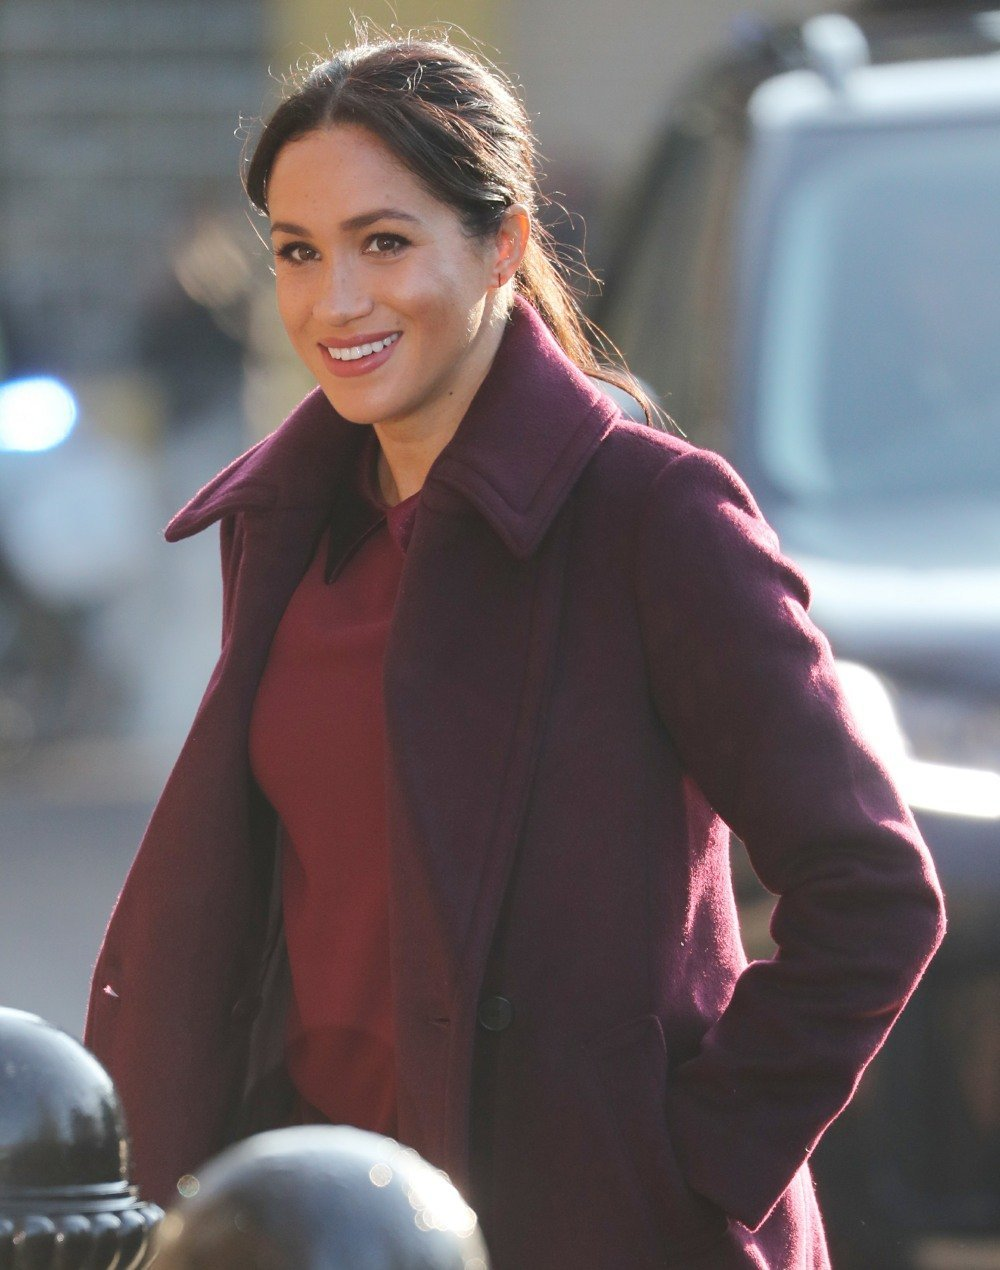 People: Duchess Meghan's 'American mentality' is clashing with veteran royal aides